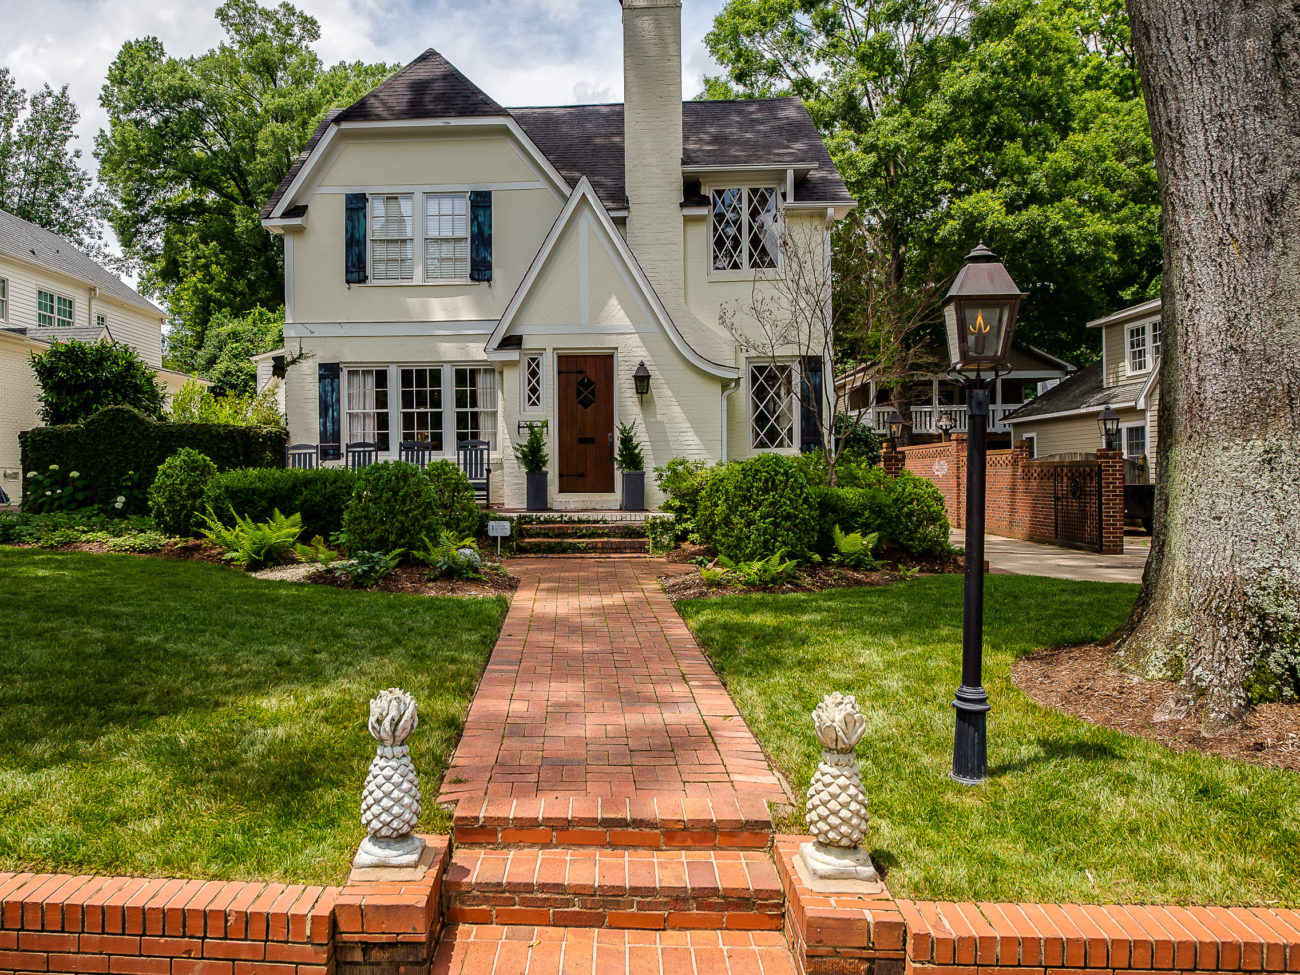 House hunting? Top 16+ open houses this weekend including a penthouse condo in Dilworth and a family home with community amenities on Lake Wylie